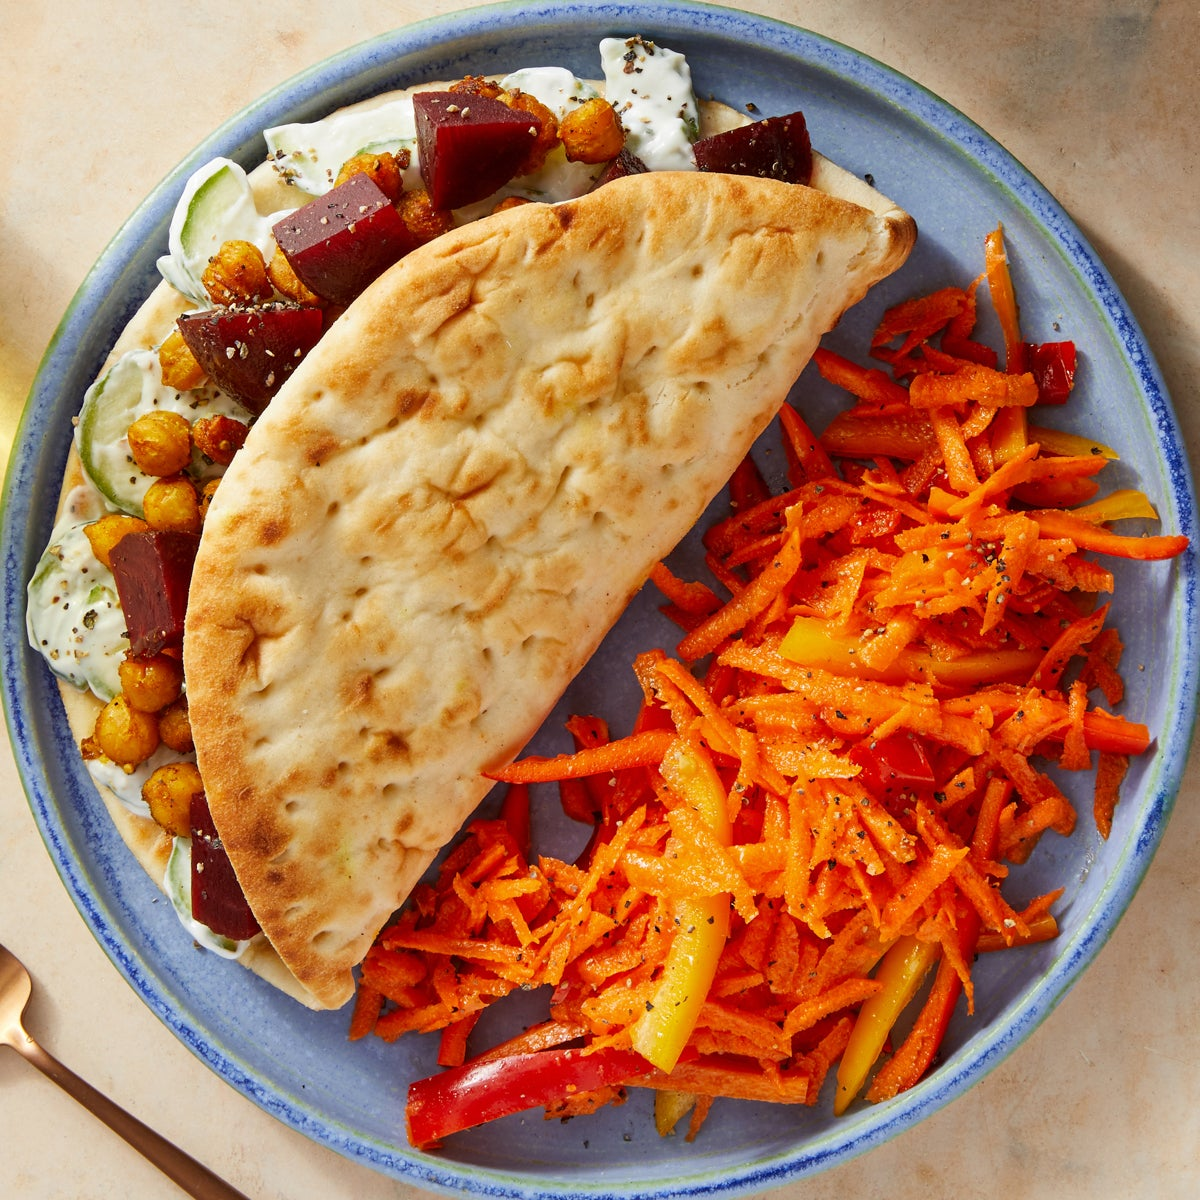 Vadouvan-Spiced Chickpea Pitas with Creamy Dressed Cucumbers & Beets